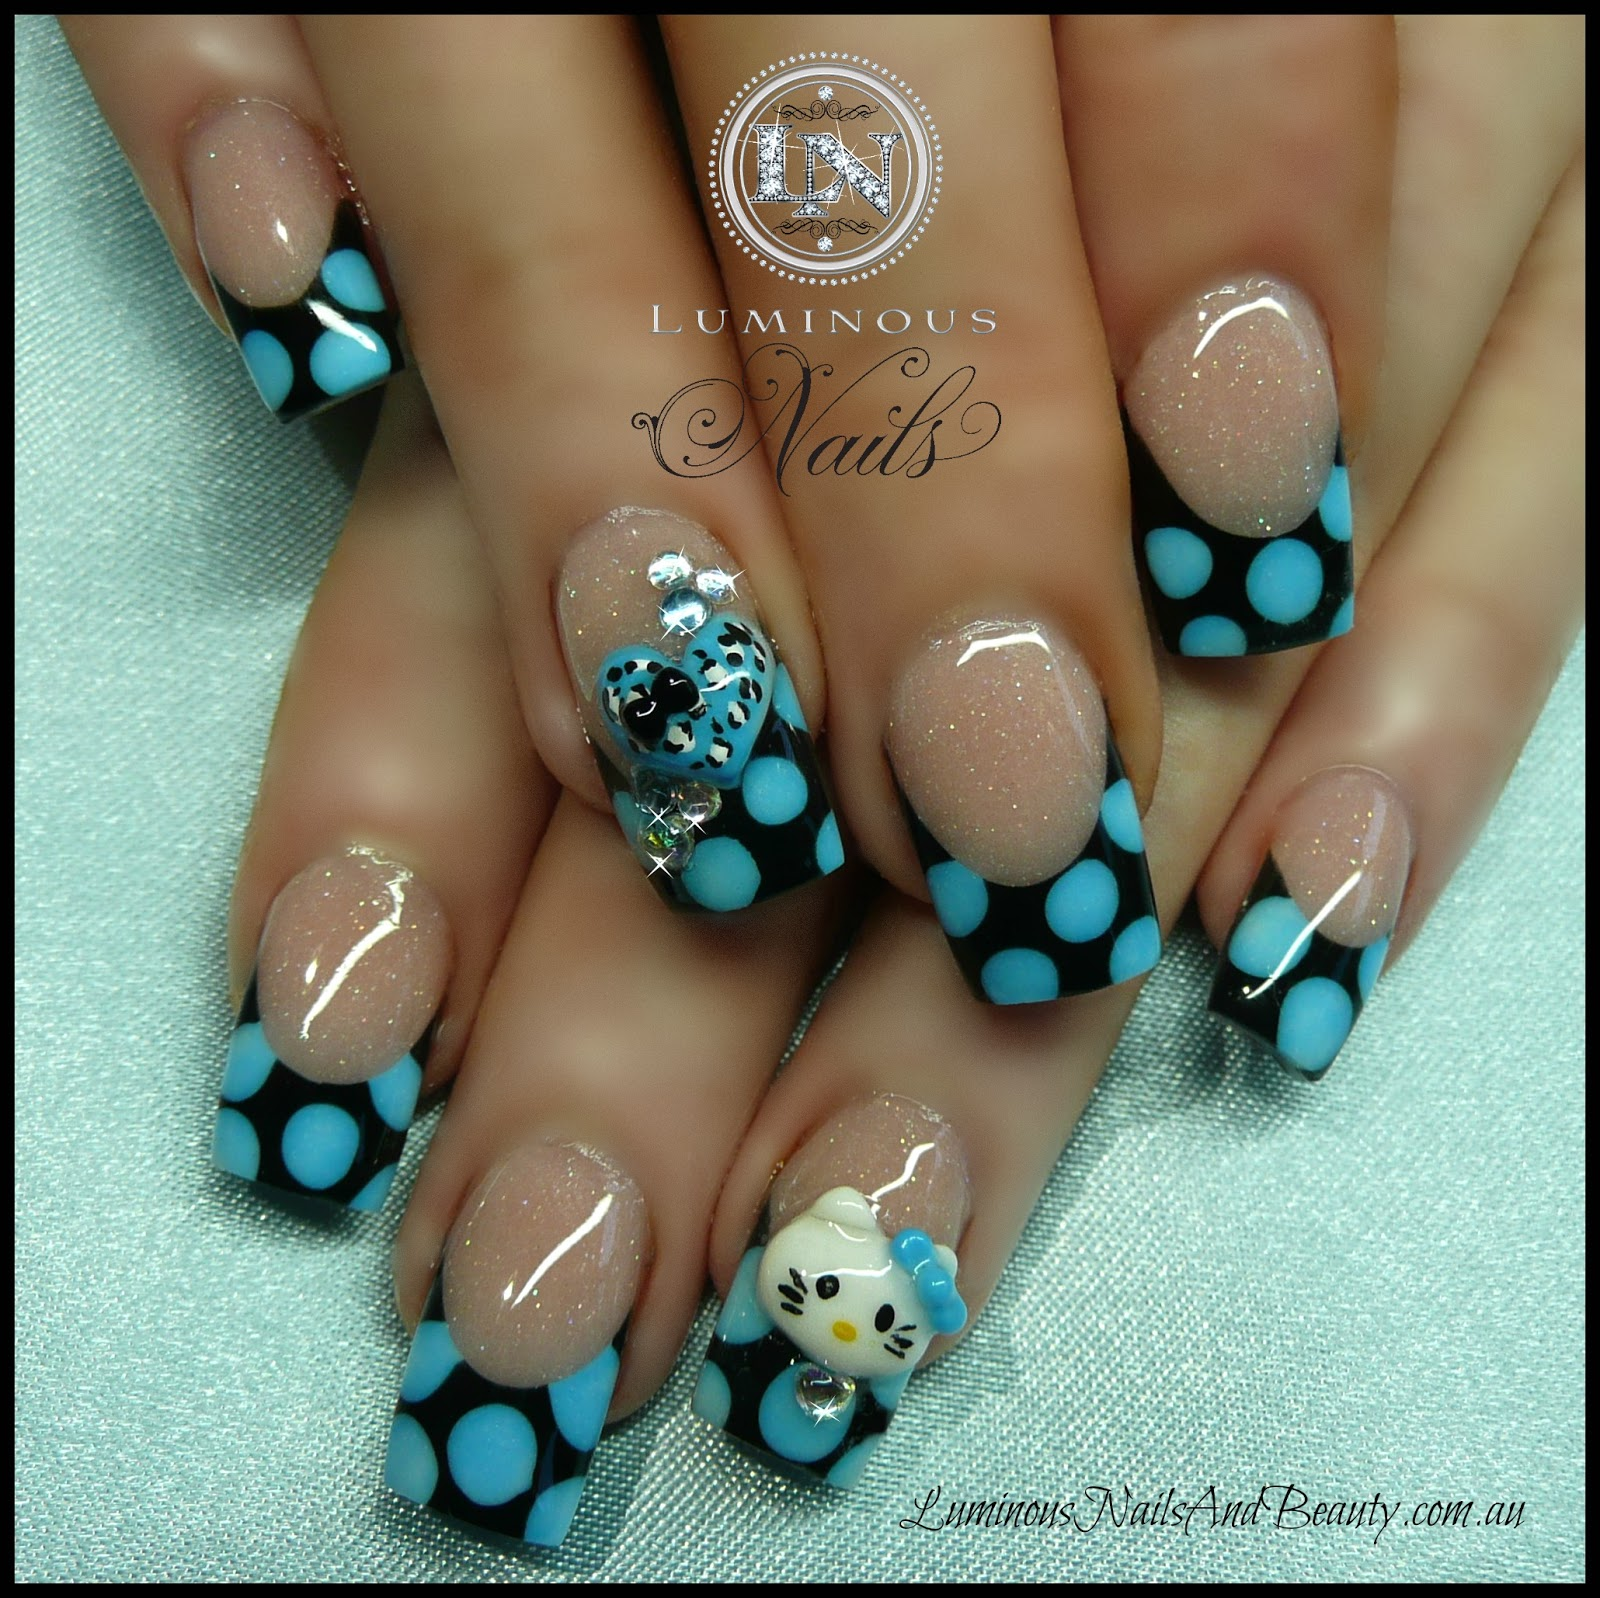 The Charming Simple white cheetah nails Digital Imagery